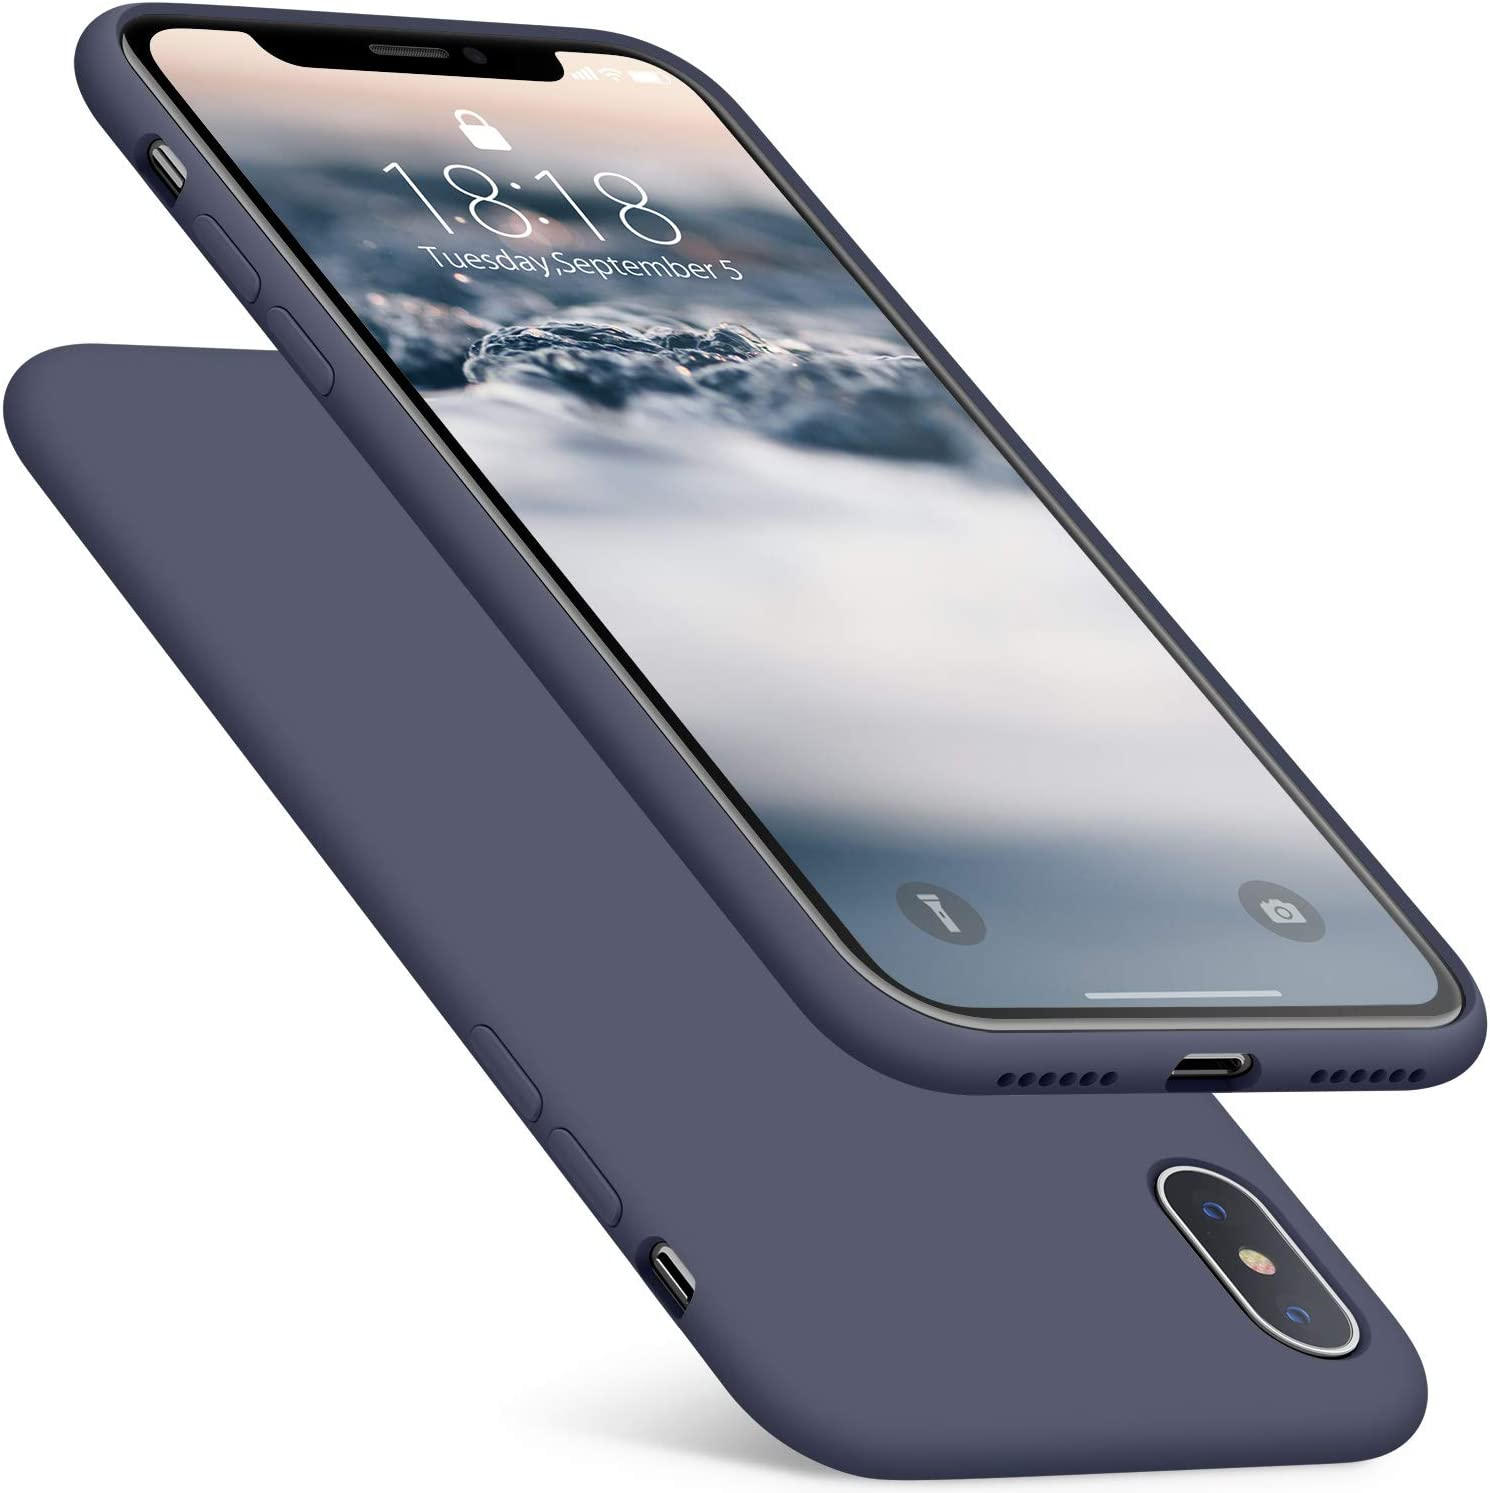 DTTO Compatible with iPhone Xs Case/iPhone X Case, Silicone Case [Romance Series] iPhone 10x Slim Fit Case with Hybrid Protection for iPhone Xs (2018)/iPhone X (2017) 5.8 Inch-Midnight Blue